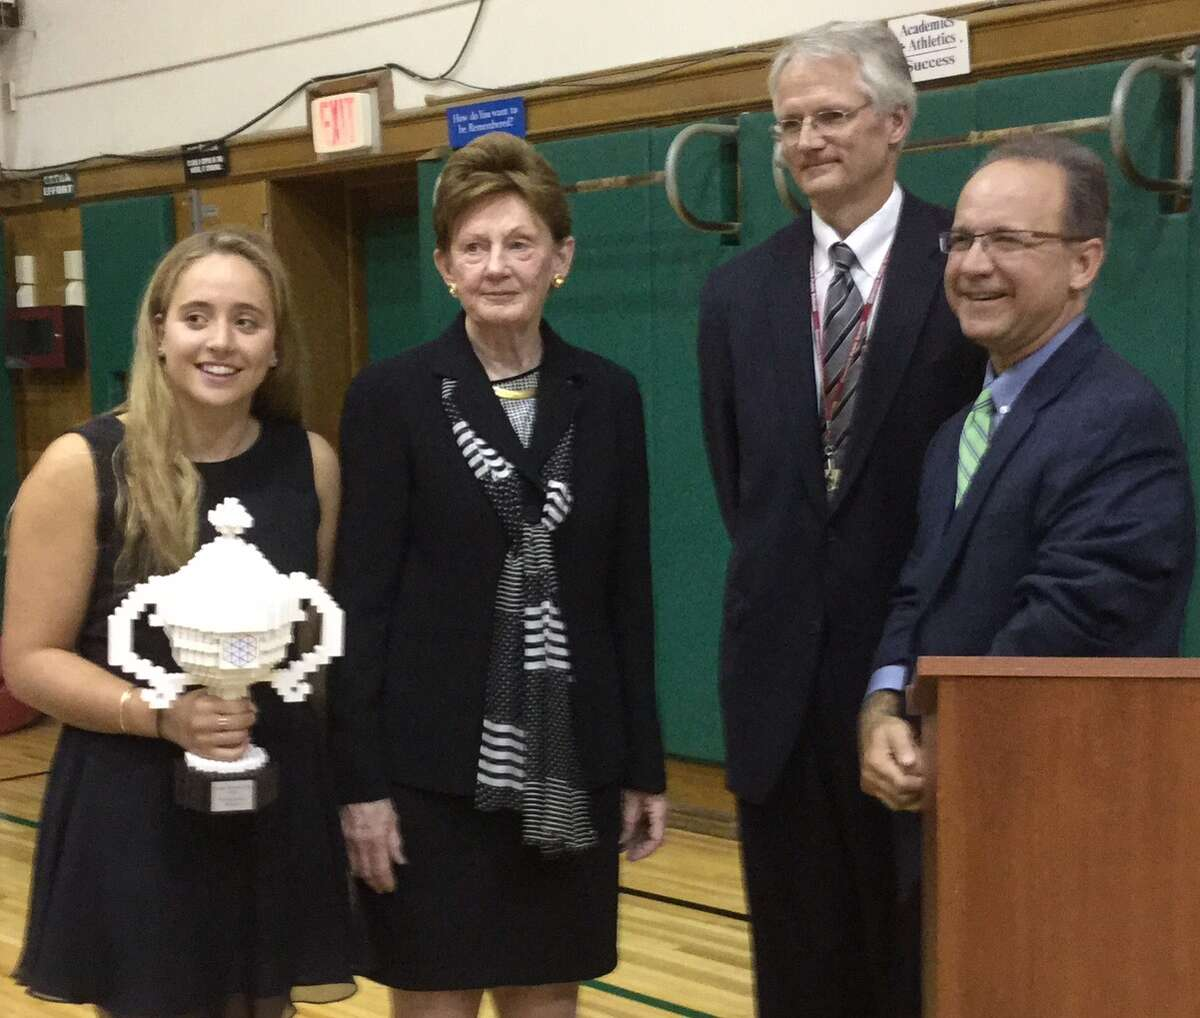 Greenwich High School junior Olivia Hallisey, left, with her Google Science Fair Grand Prize trophy, at the Board of Education's meeting Thursday at Julian Curtiss School. Joining Hallisey at the podium were, from left, Board of Education Chairman Barbara O'Neill; Superintendent of Schools William McKersie; and Andrew Bramante, Hallisey's honors science research teacher.